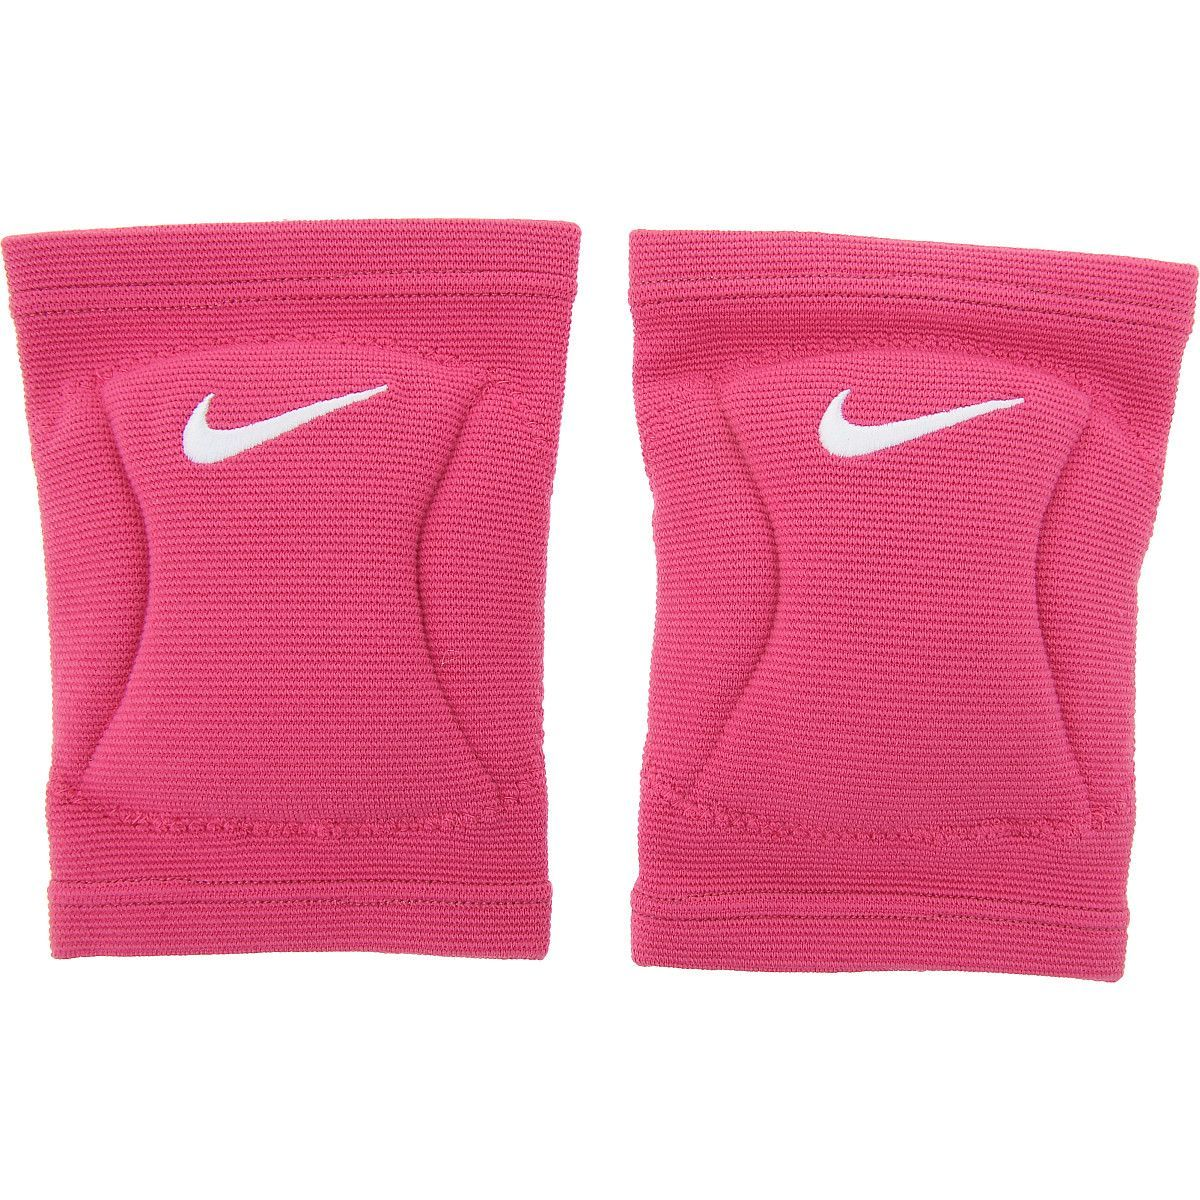 These Nike Streak Volleyball Knee Pads Will Give You The Confidence To Go After Every Loose Ball V In 2020 Volleyball Knee Pads Volleyball Outfits Volleyball Workouts